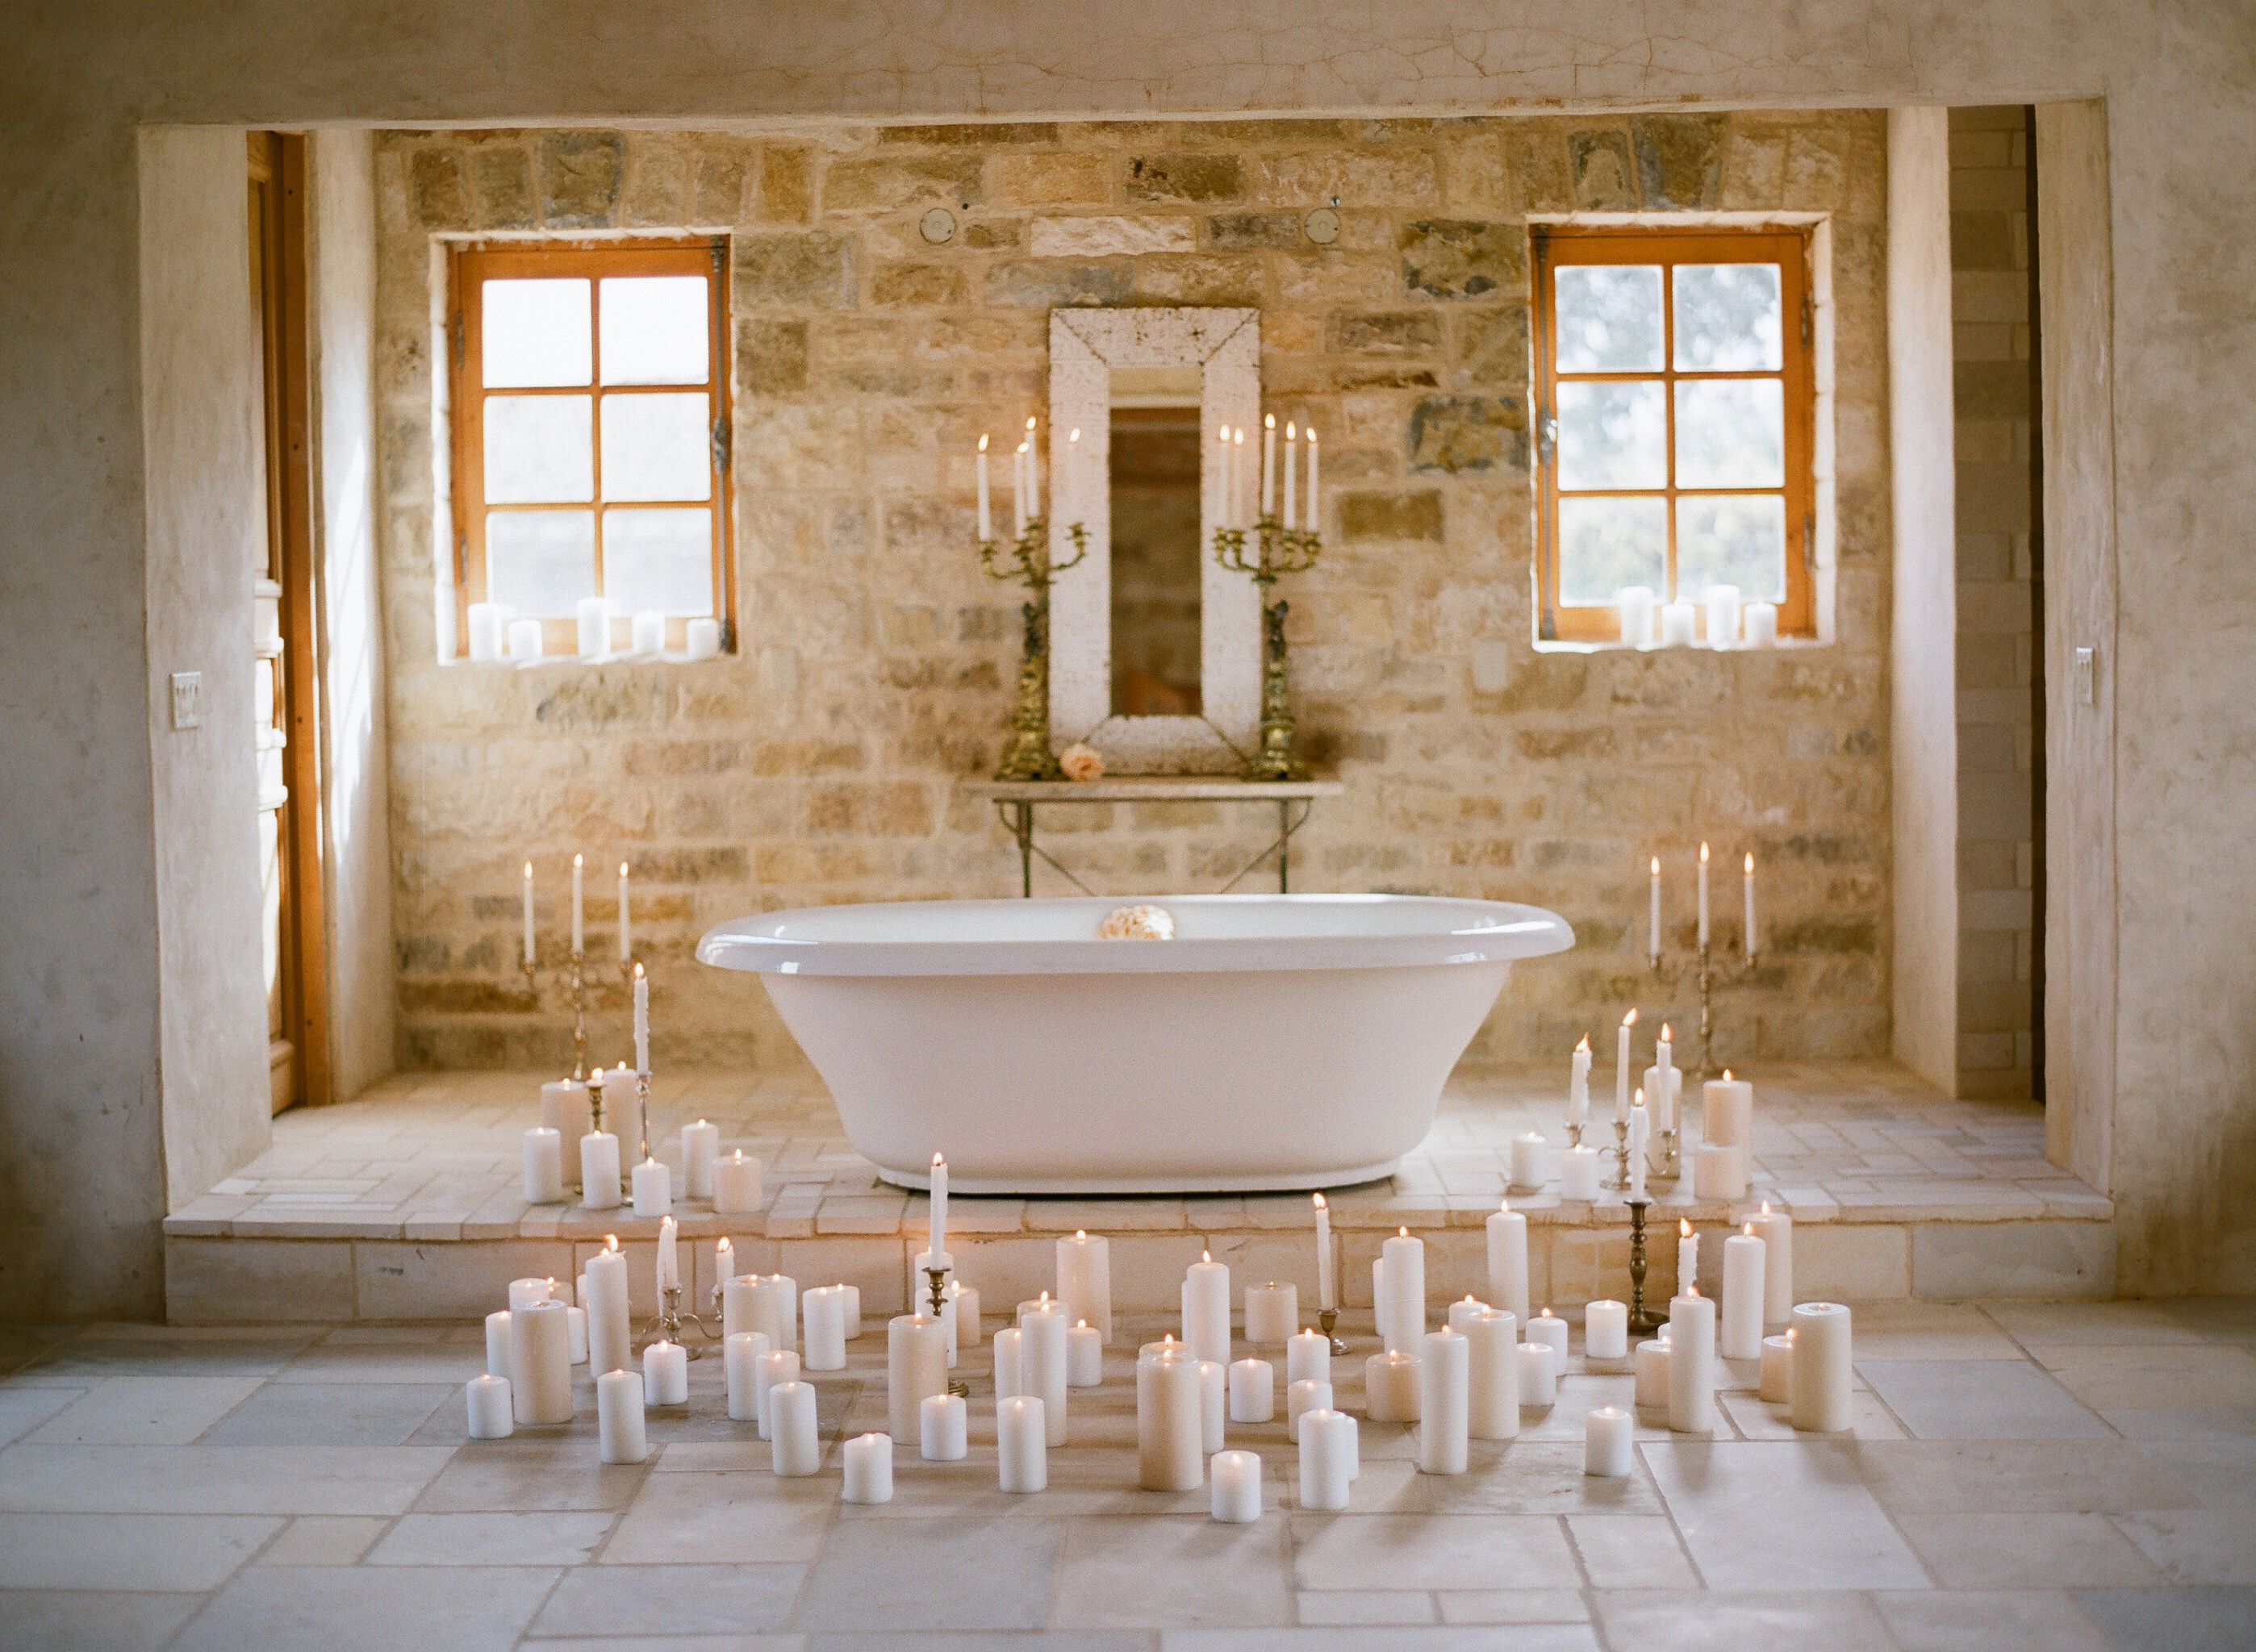 An Elopement With A Carefree Spirit Once Wed Romantic Bathrooms Bathroom Design Candles Bathtub